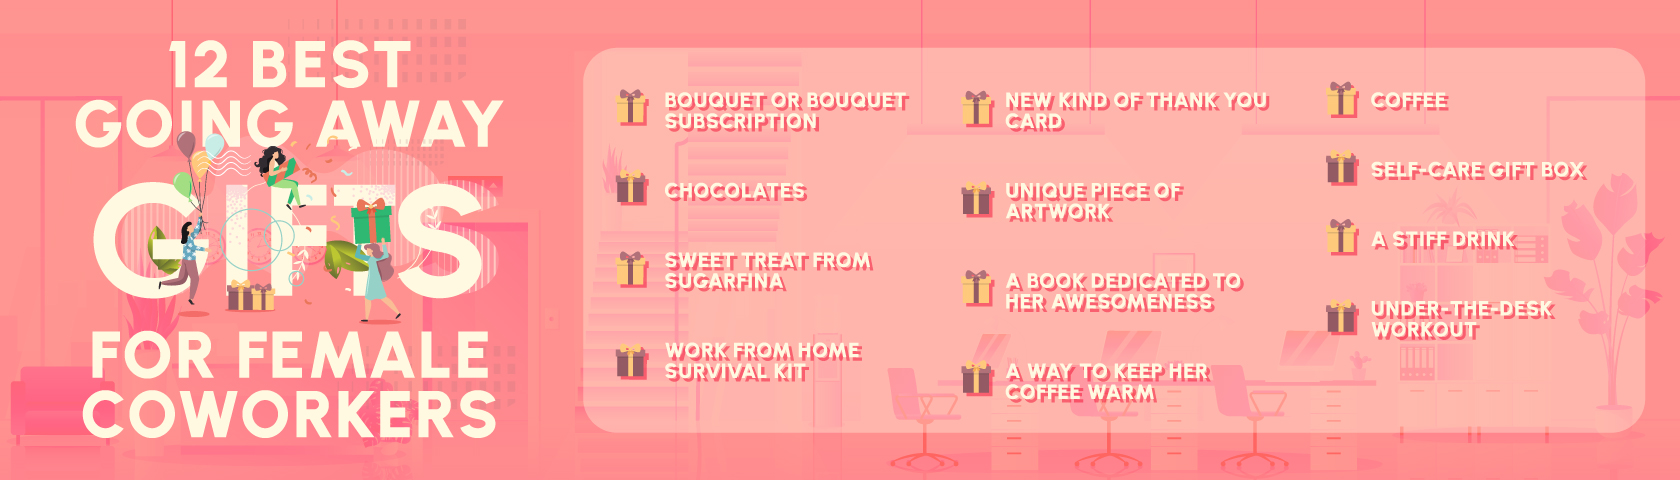 best going away gifts for coworkers infographic